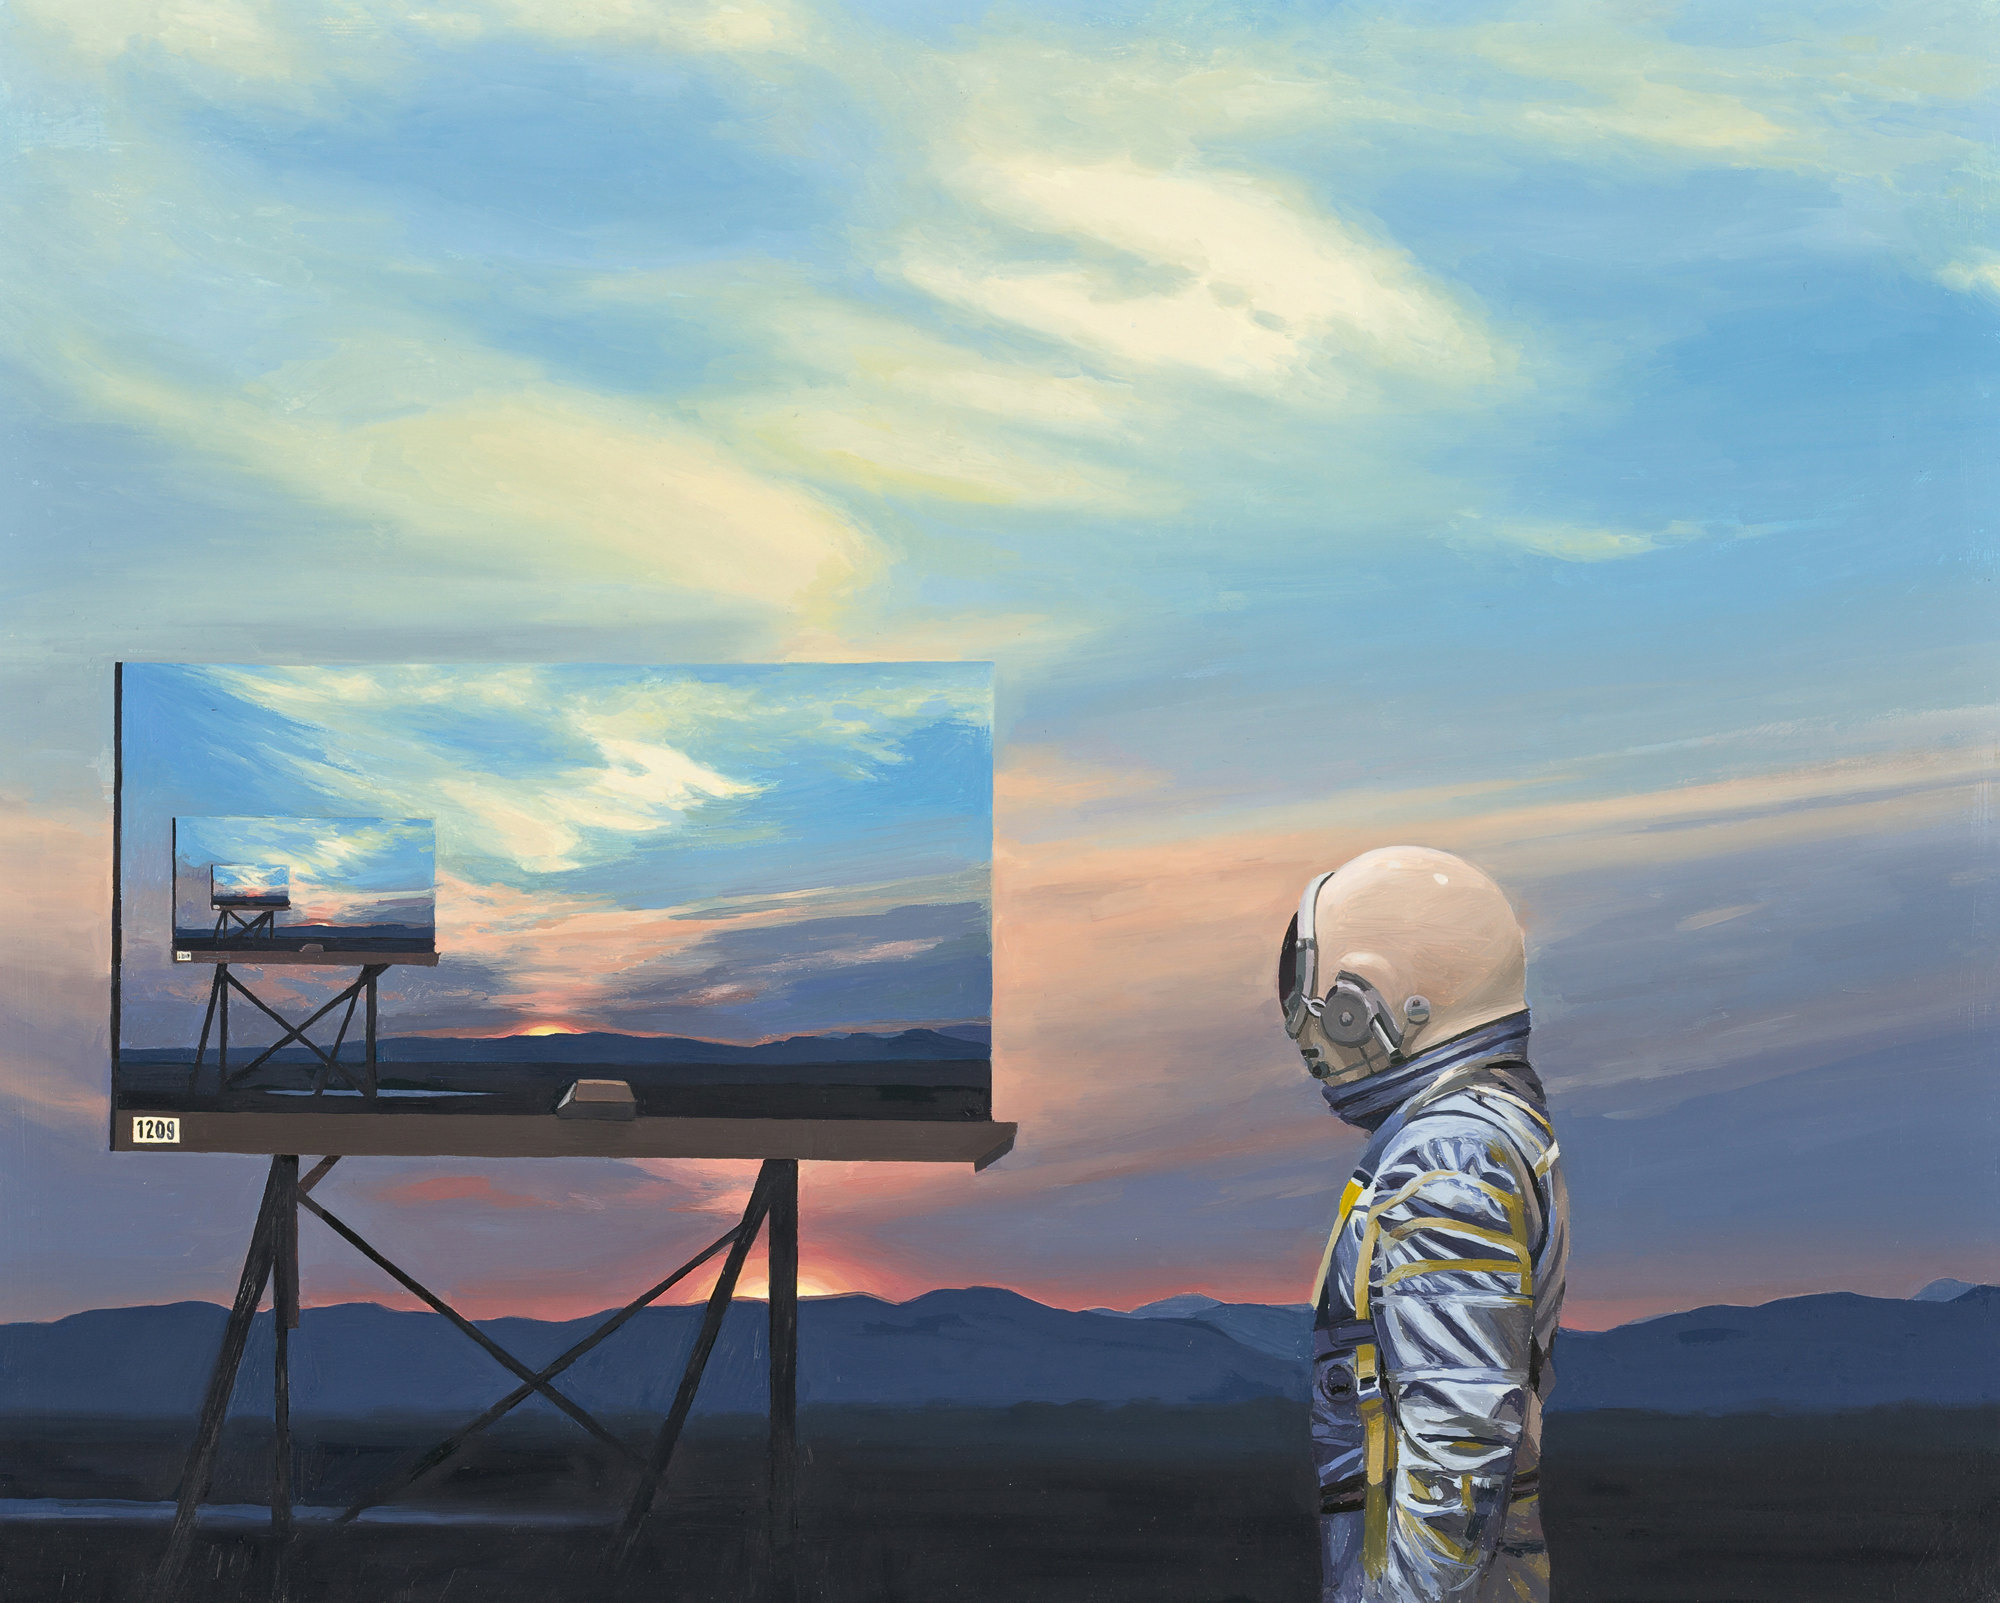 Scott Listfield: Astronauts, and a Critical Look at Modern Society